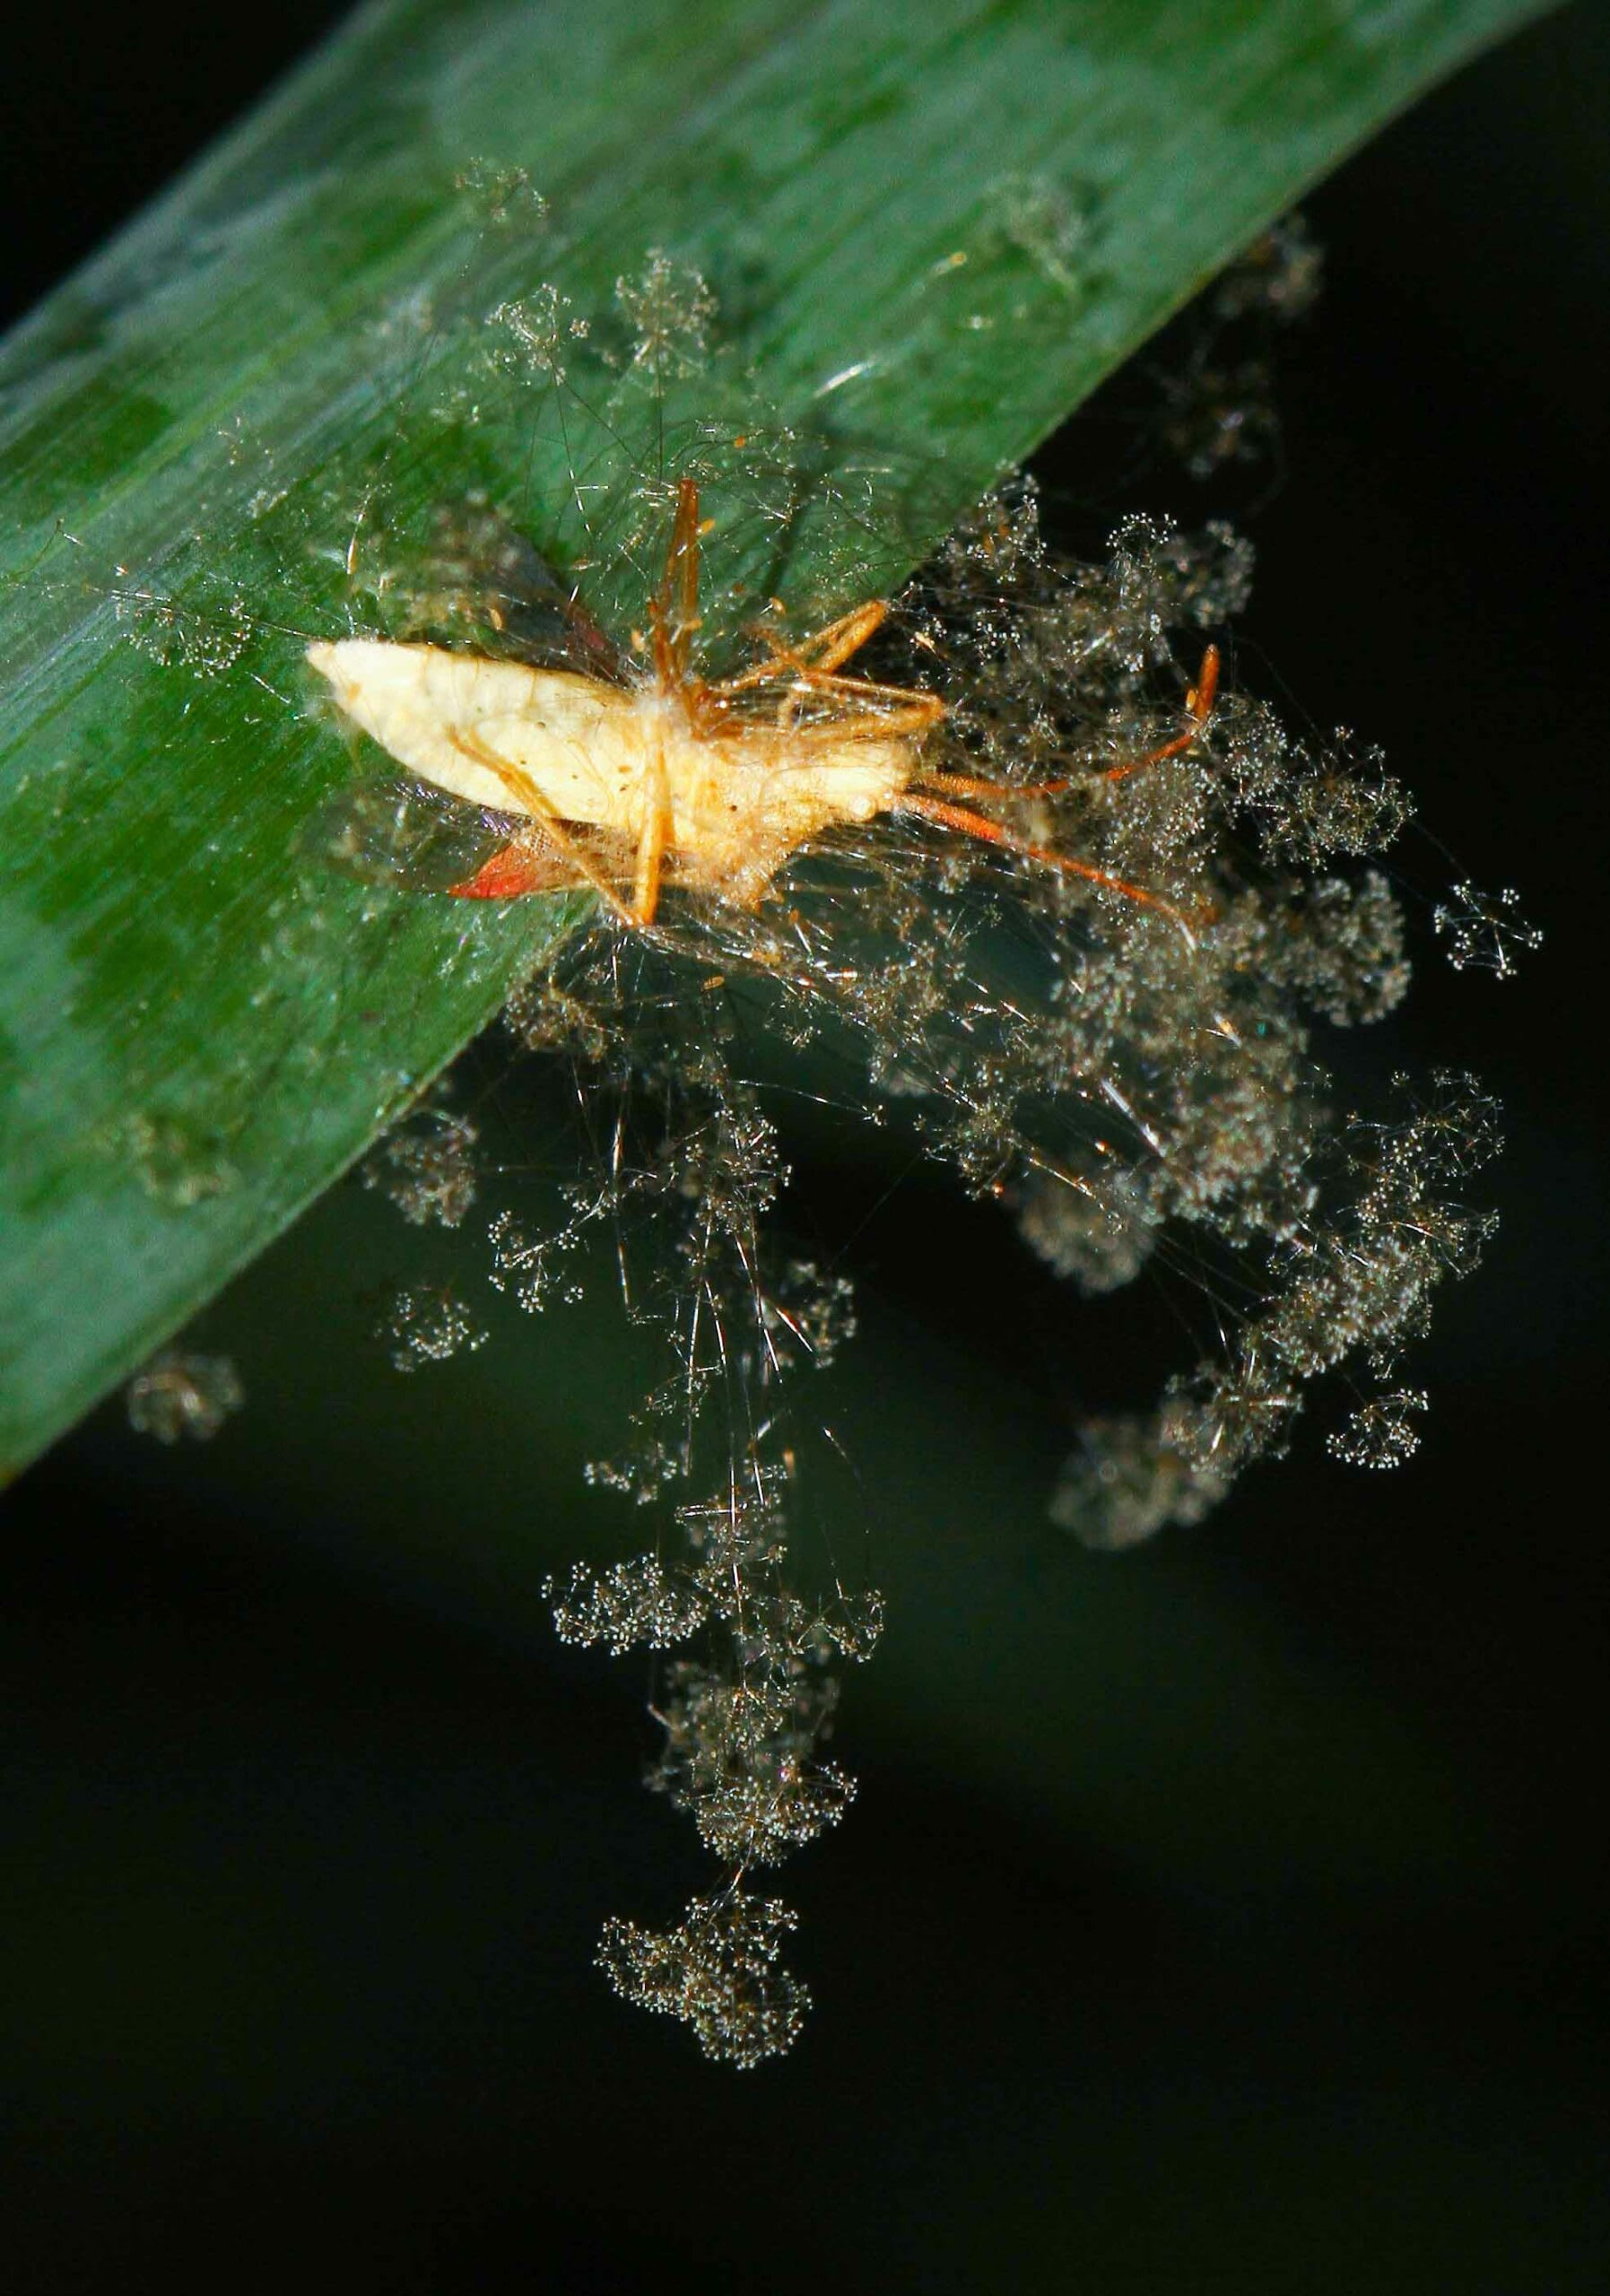 """(Top left) Cordyceps fungi growing on a forest cockroach. (Top right) A cordyceps erupting its spore-bearing """"horn"""" from the head-joint of a Camponotus ant. (Above) The sparkler fungus is a pathogenic Ascomycota fungus; this one has infected a Hemipteran bug. The spores of these fungi need to enter orally to infect the host. Photos: Jaisal Singh Bhati (top left and above), Aniruddha Dhamorikar (top right)  Cover photo: Daddy long legs spider infected by cordyceps fungus. The fungus has covered the body of the dead spider. The whitish fur-like structures are the fruiting bodies of the fungi. Photo: Ripan Biswas."""